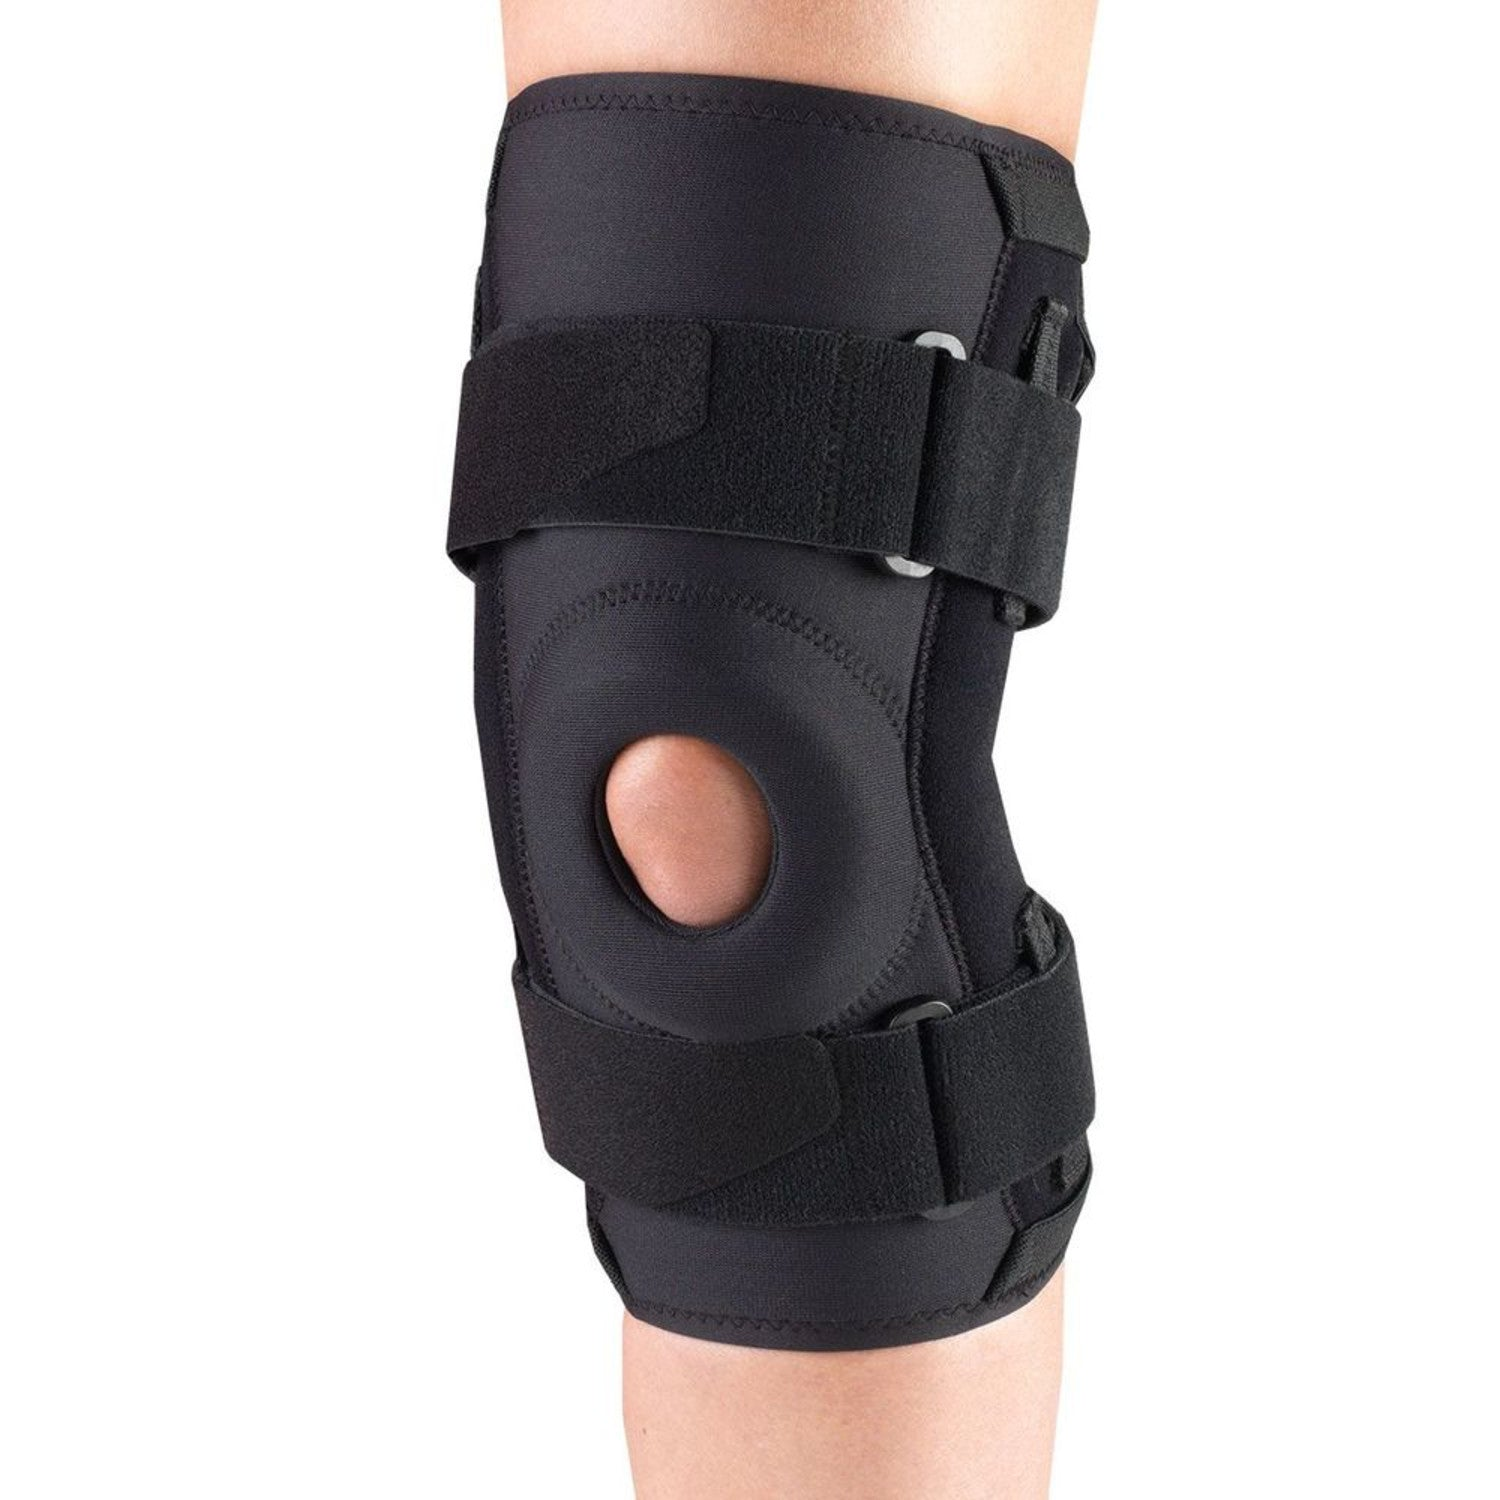 --Front of ORTHOTEX KNEE STABILIZER - HINGED BARS--